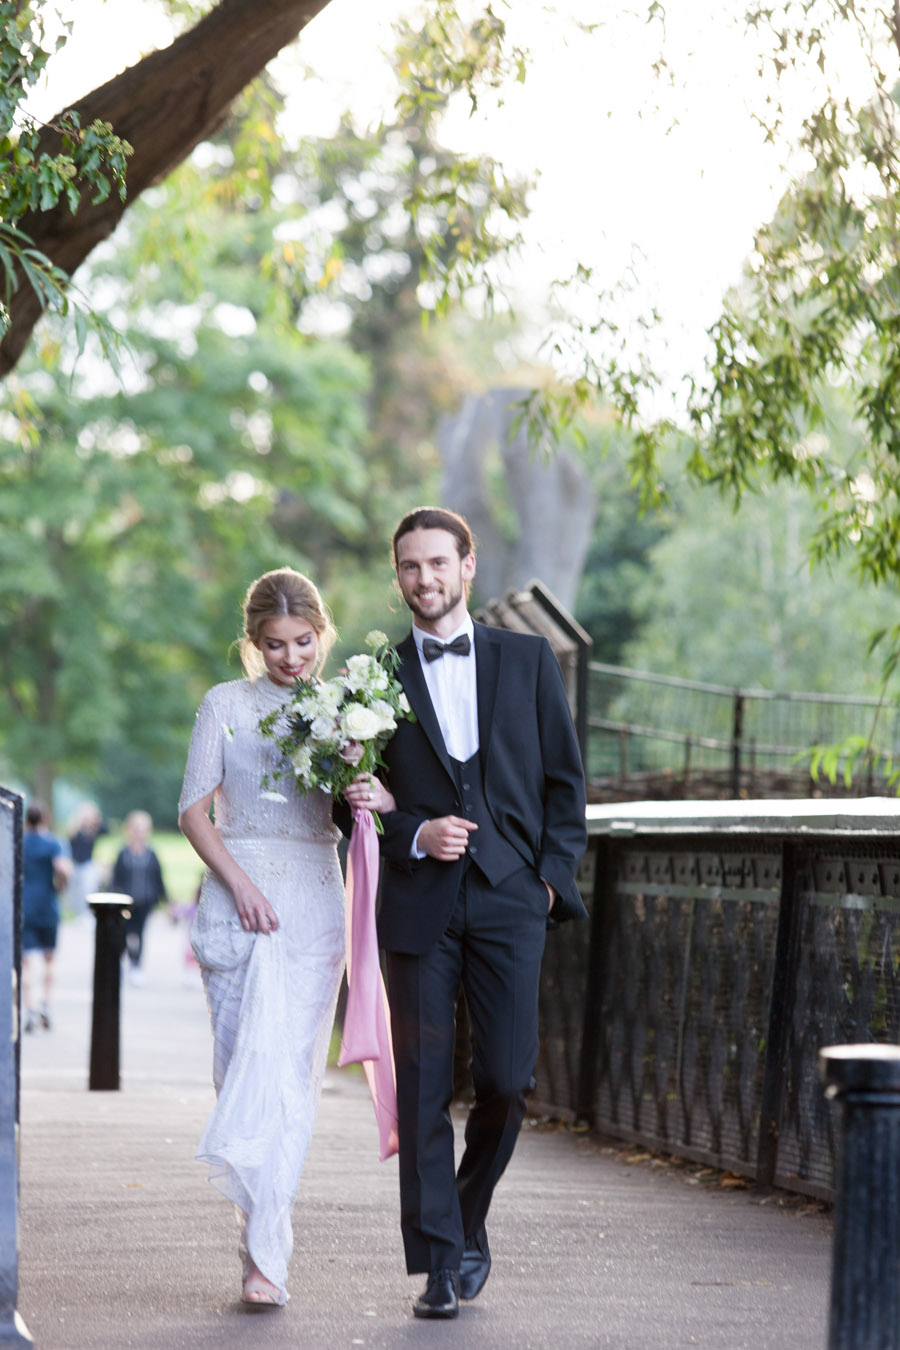 Elegant and timeless wedding look for 2019 brides and grooms, image credit Amanda Karen Photography (41)